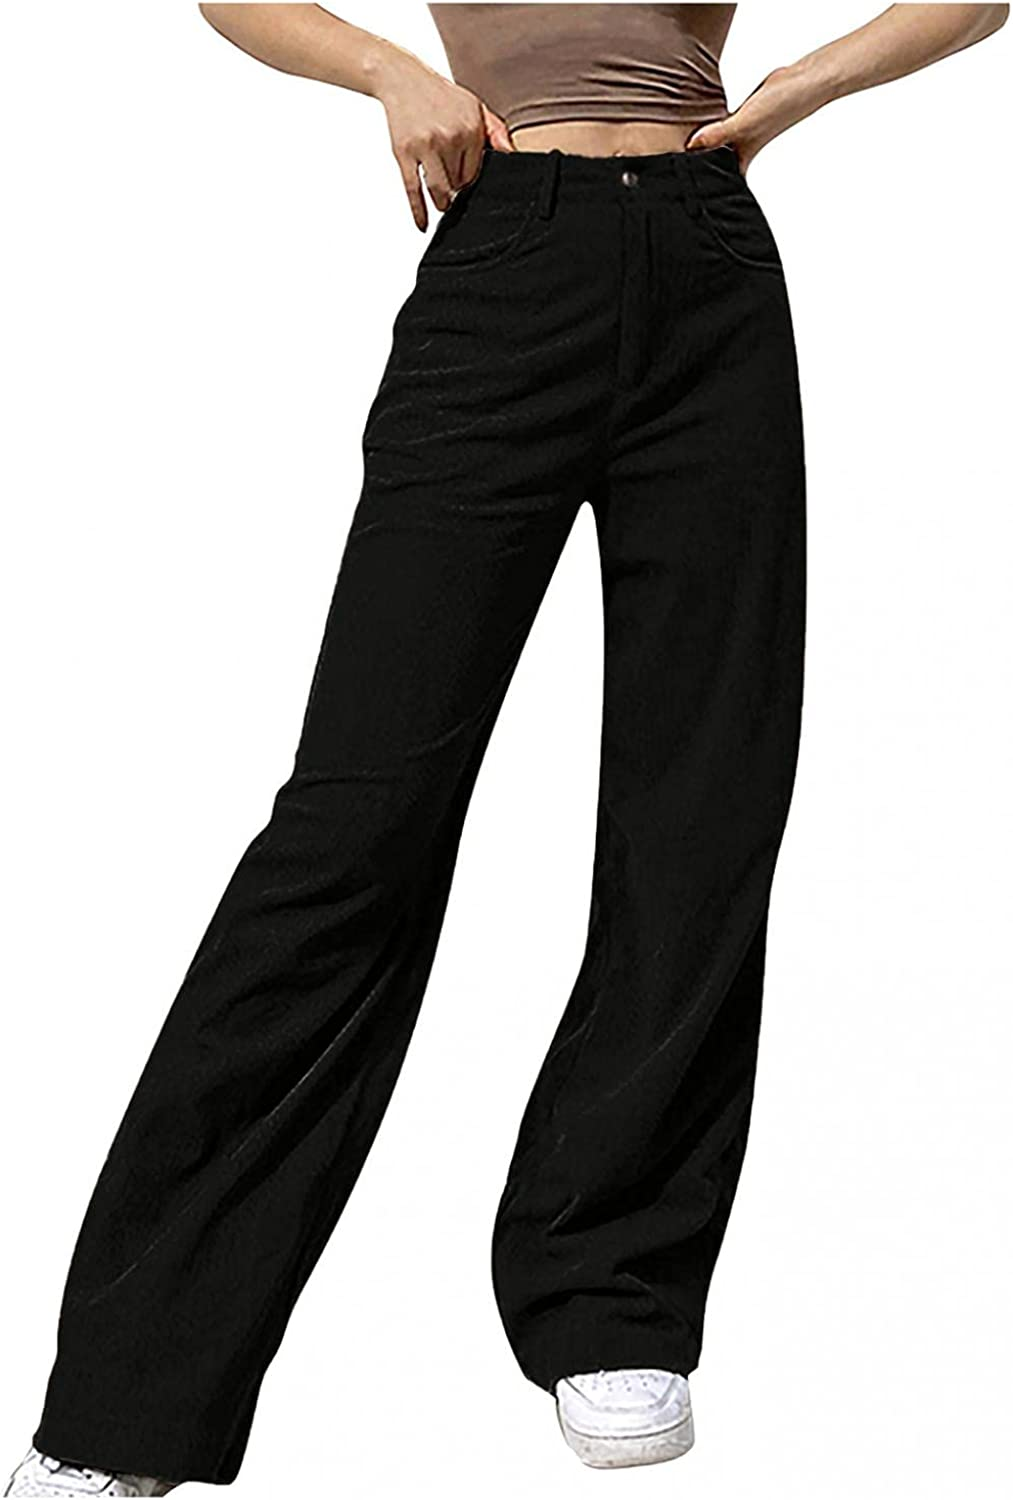 Fudule Y2K Jeans for Women High Waisted Straight Pants Fall Ribbed Trousers 90s Vintage Baggy Pant Fashion Y2K Clothes